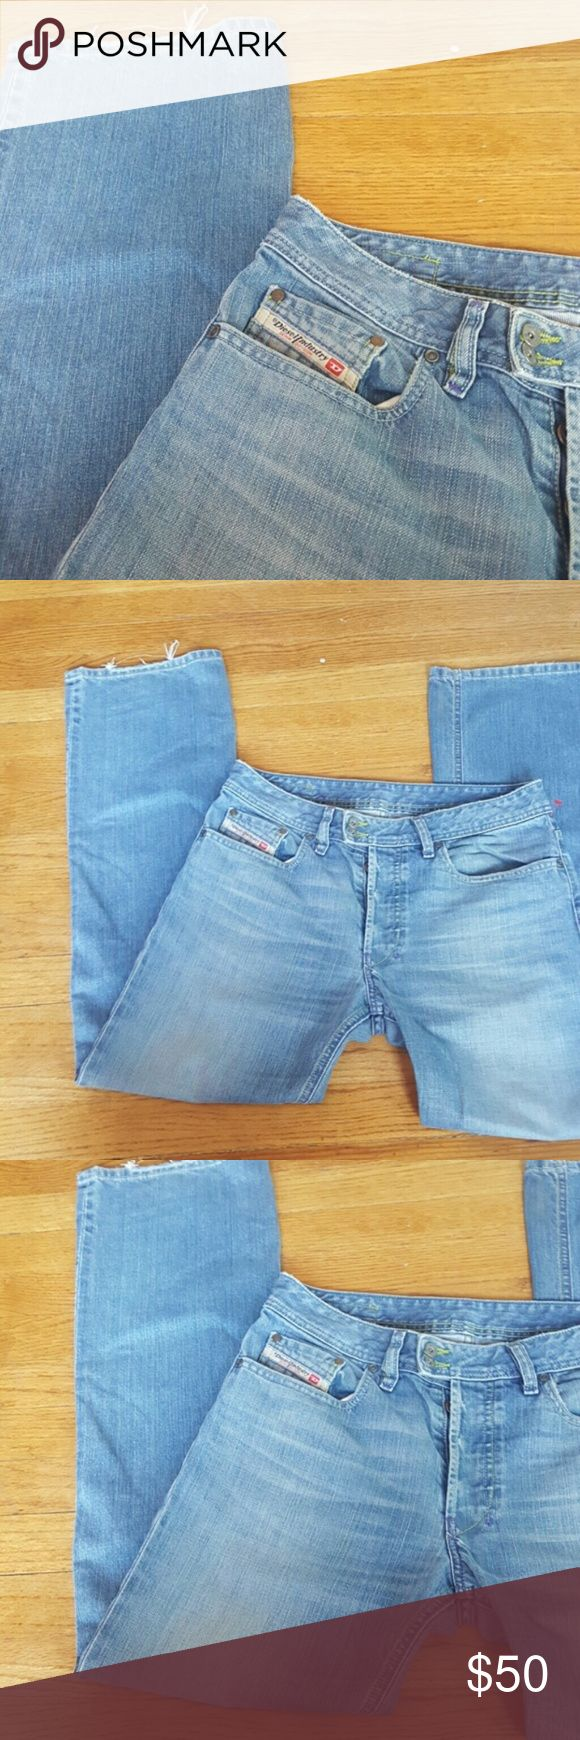 DIESEL brand women's jeans 30 x 32 blue jeans Diesel Women's light wash blue jeans size 30x32 DIESEL INDUSTRY DENIM DIVISON MADE IN ITALY SIZE 30 LIGHT WASH BLUE JEANS EUC BUTTON FLY STRAIGHT CUT SOME STRETCH 16 ACROSS 10 INCH RISE 32 inch inseam Purple and yellow seams Great quality Diesel Jeans